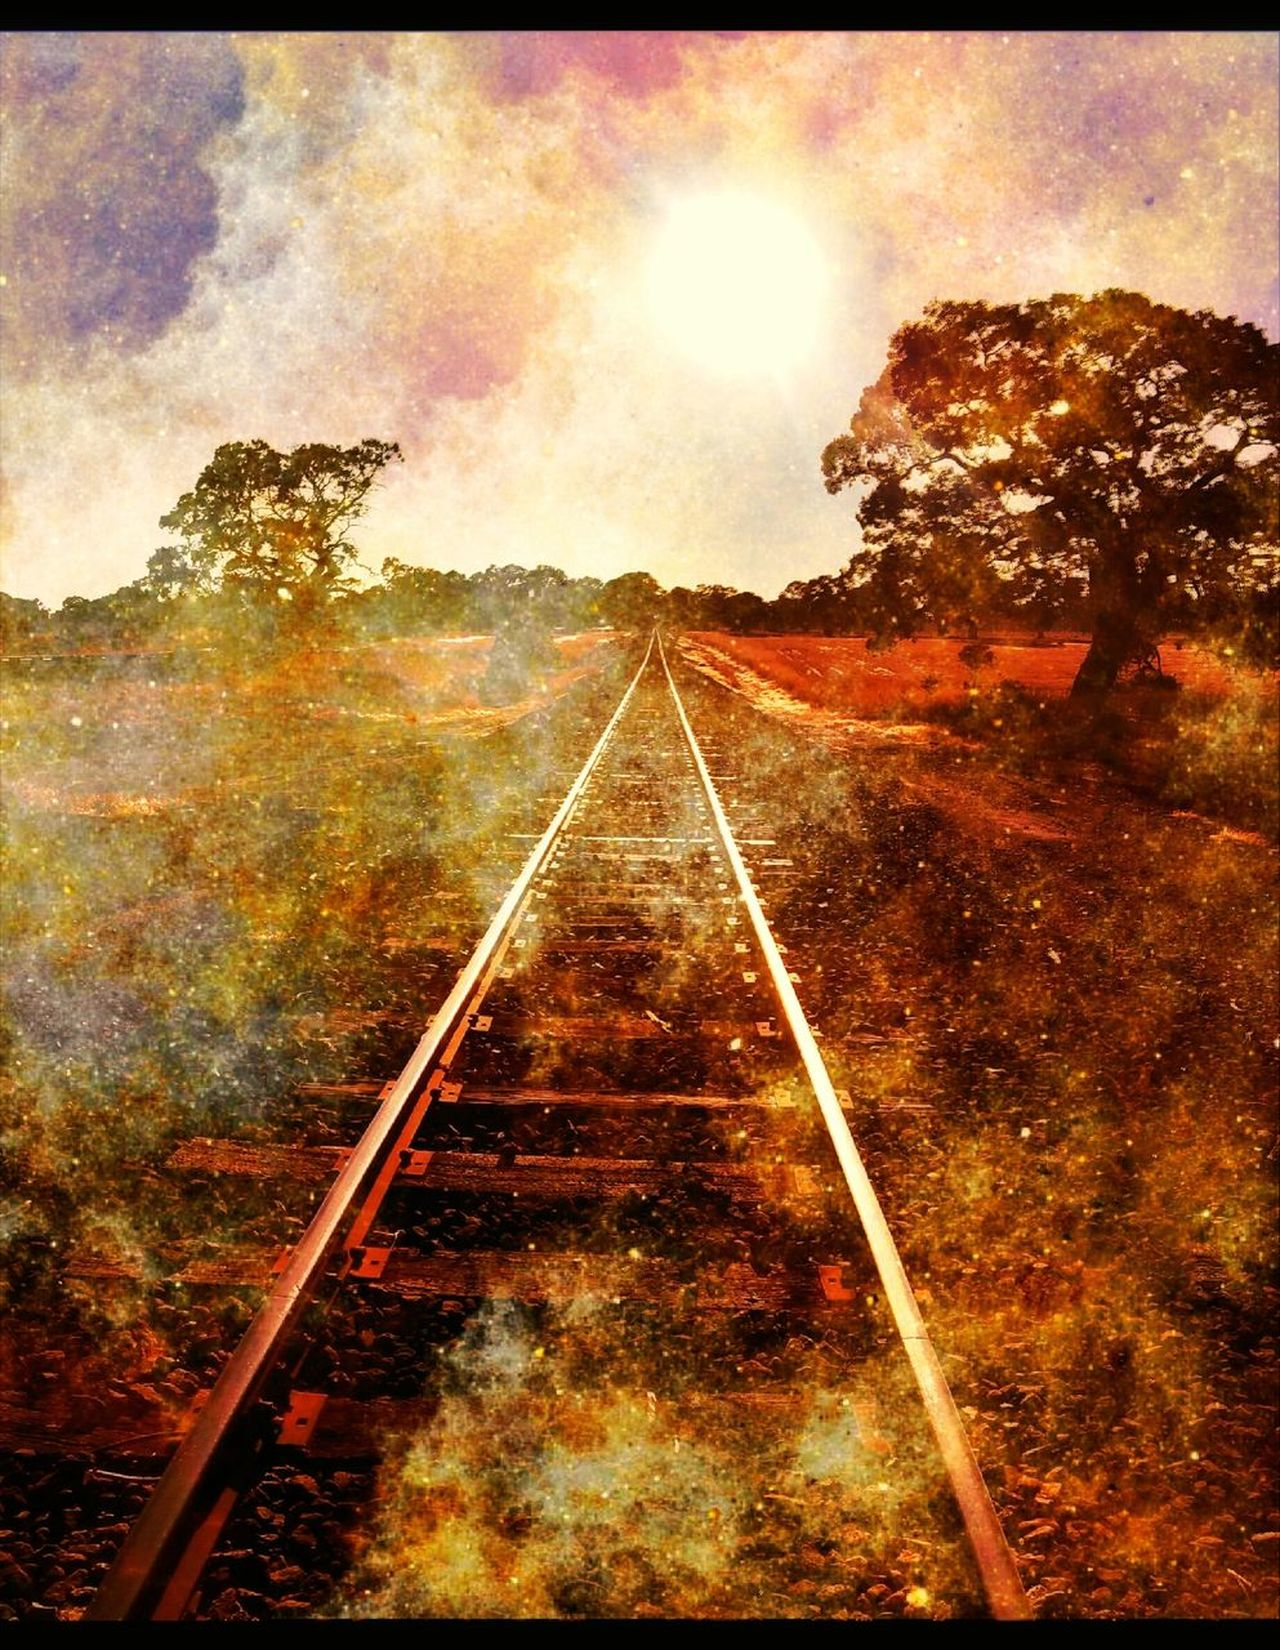 """▶ https://youtu.be/RW65T5SjFeA ...🚈🎧. ▶▶ https://youtu.be/B1eyZAedhY4 🎺 """"And there is the headlight shining far down the track, glinting off the steel rails that, like all parallel lines, will meet in infinity, which is after all where this train is going."""" (B.Catton) The Way Forward Double Exposure Break The Mold Exceptional Photographs Artistic Photography Artistic Expression Diminishing Perspective Parallel Lines Railroad Track Australian Landscape Landscape_Collection Lyricalartistry"""